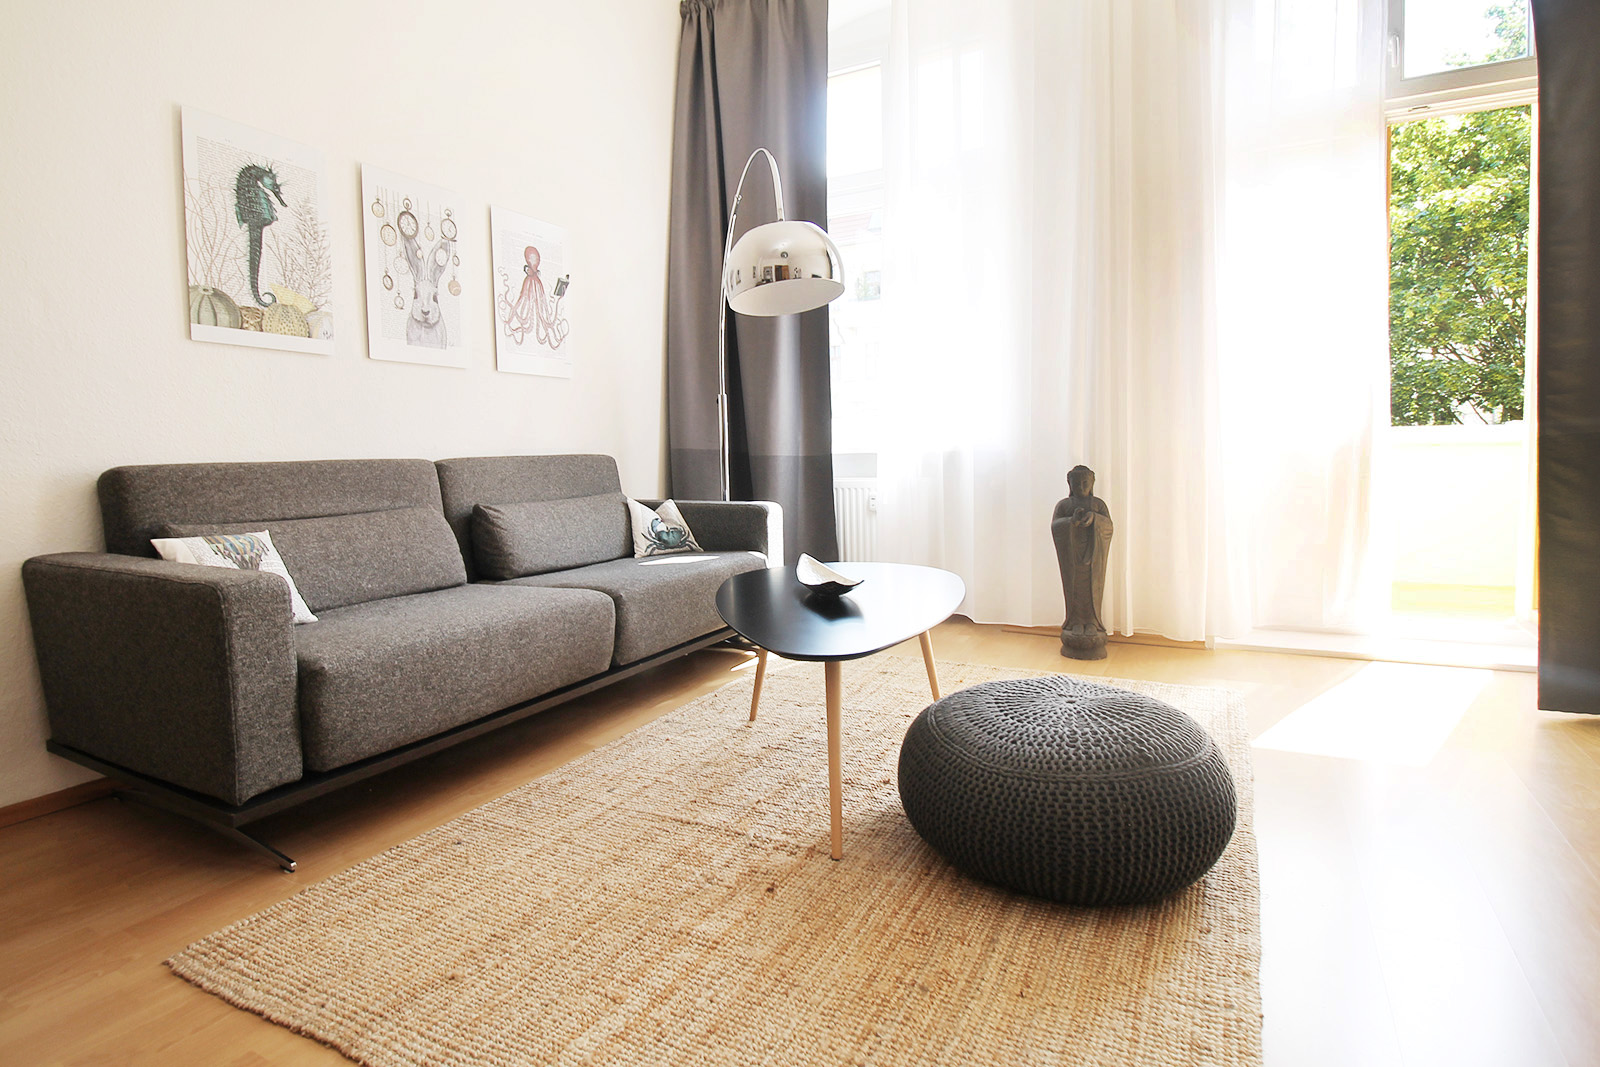 815 | Lovely And Superb Apartment In Vibrant Friedrichshain